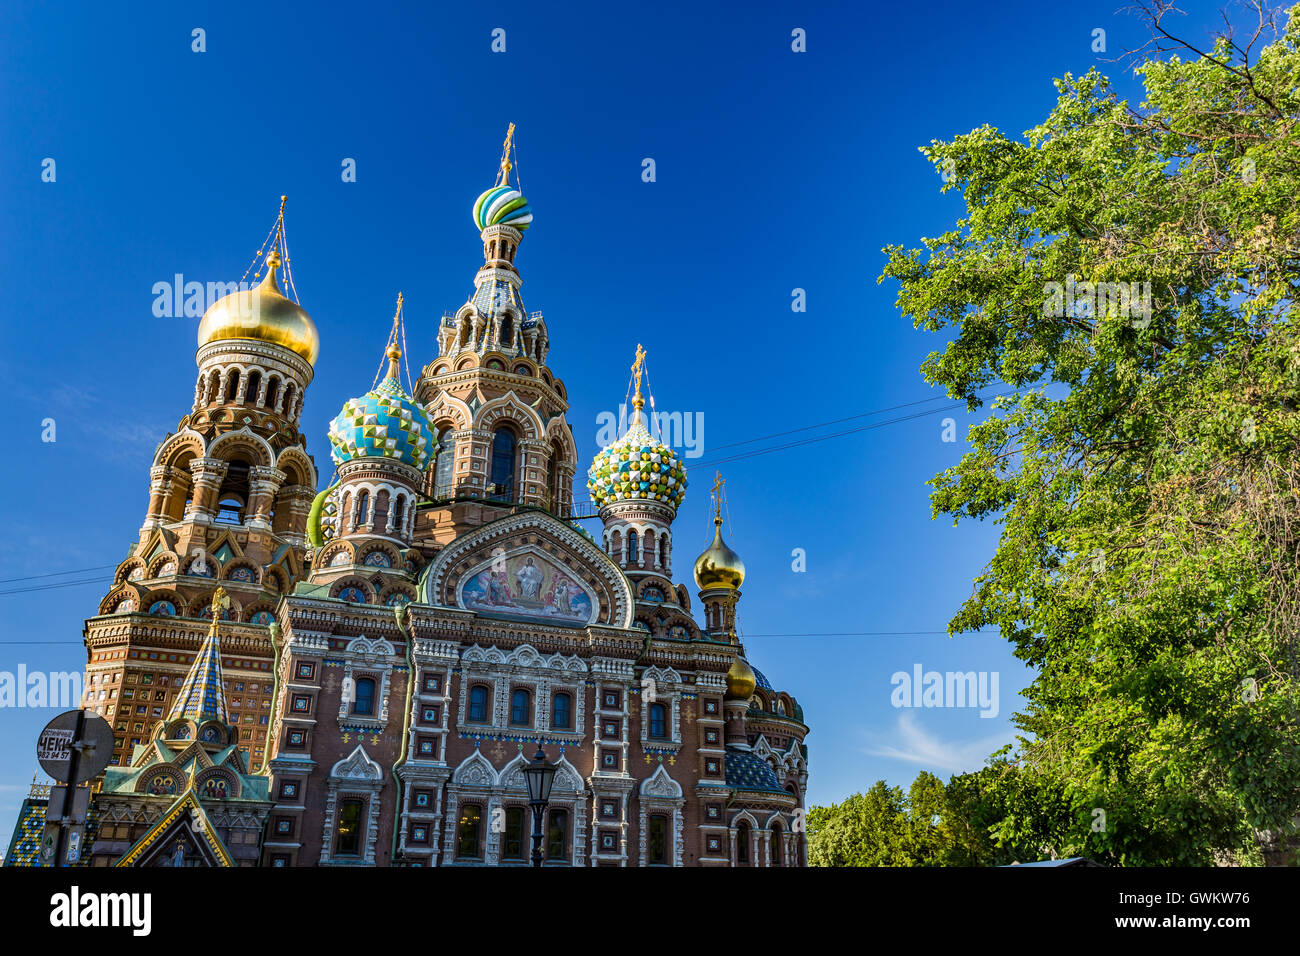 Russia, St. Petersburg, The Church of the Savior on Spilled Blood - Stock Image